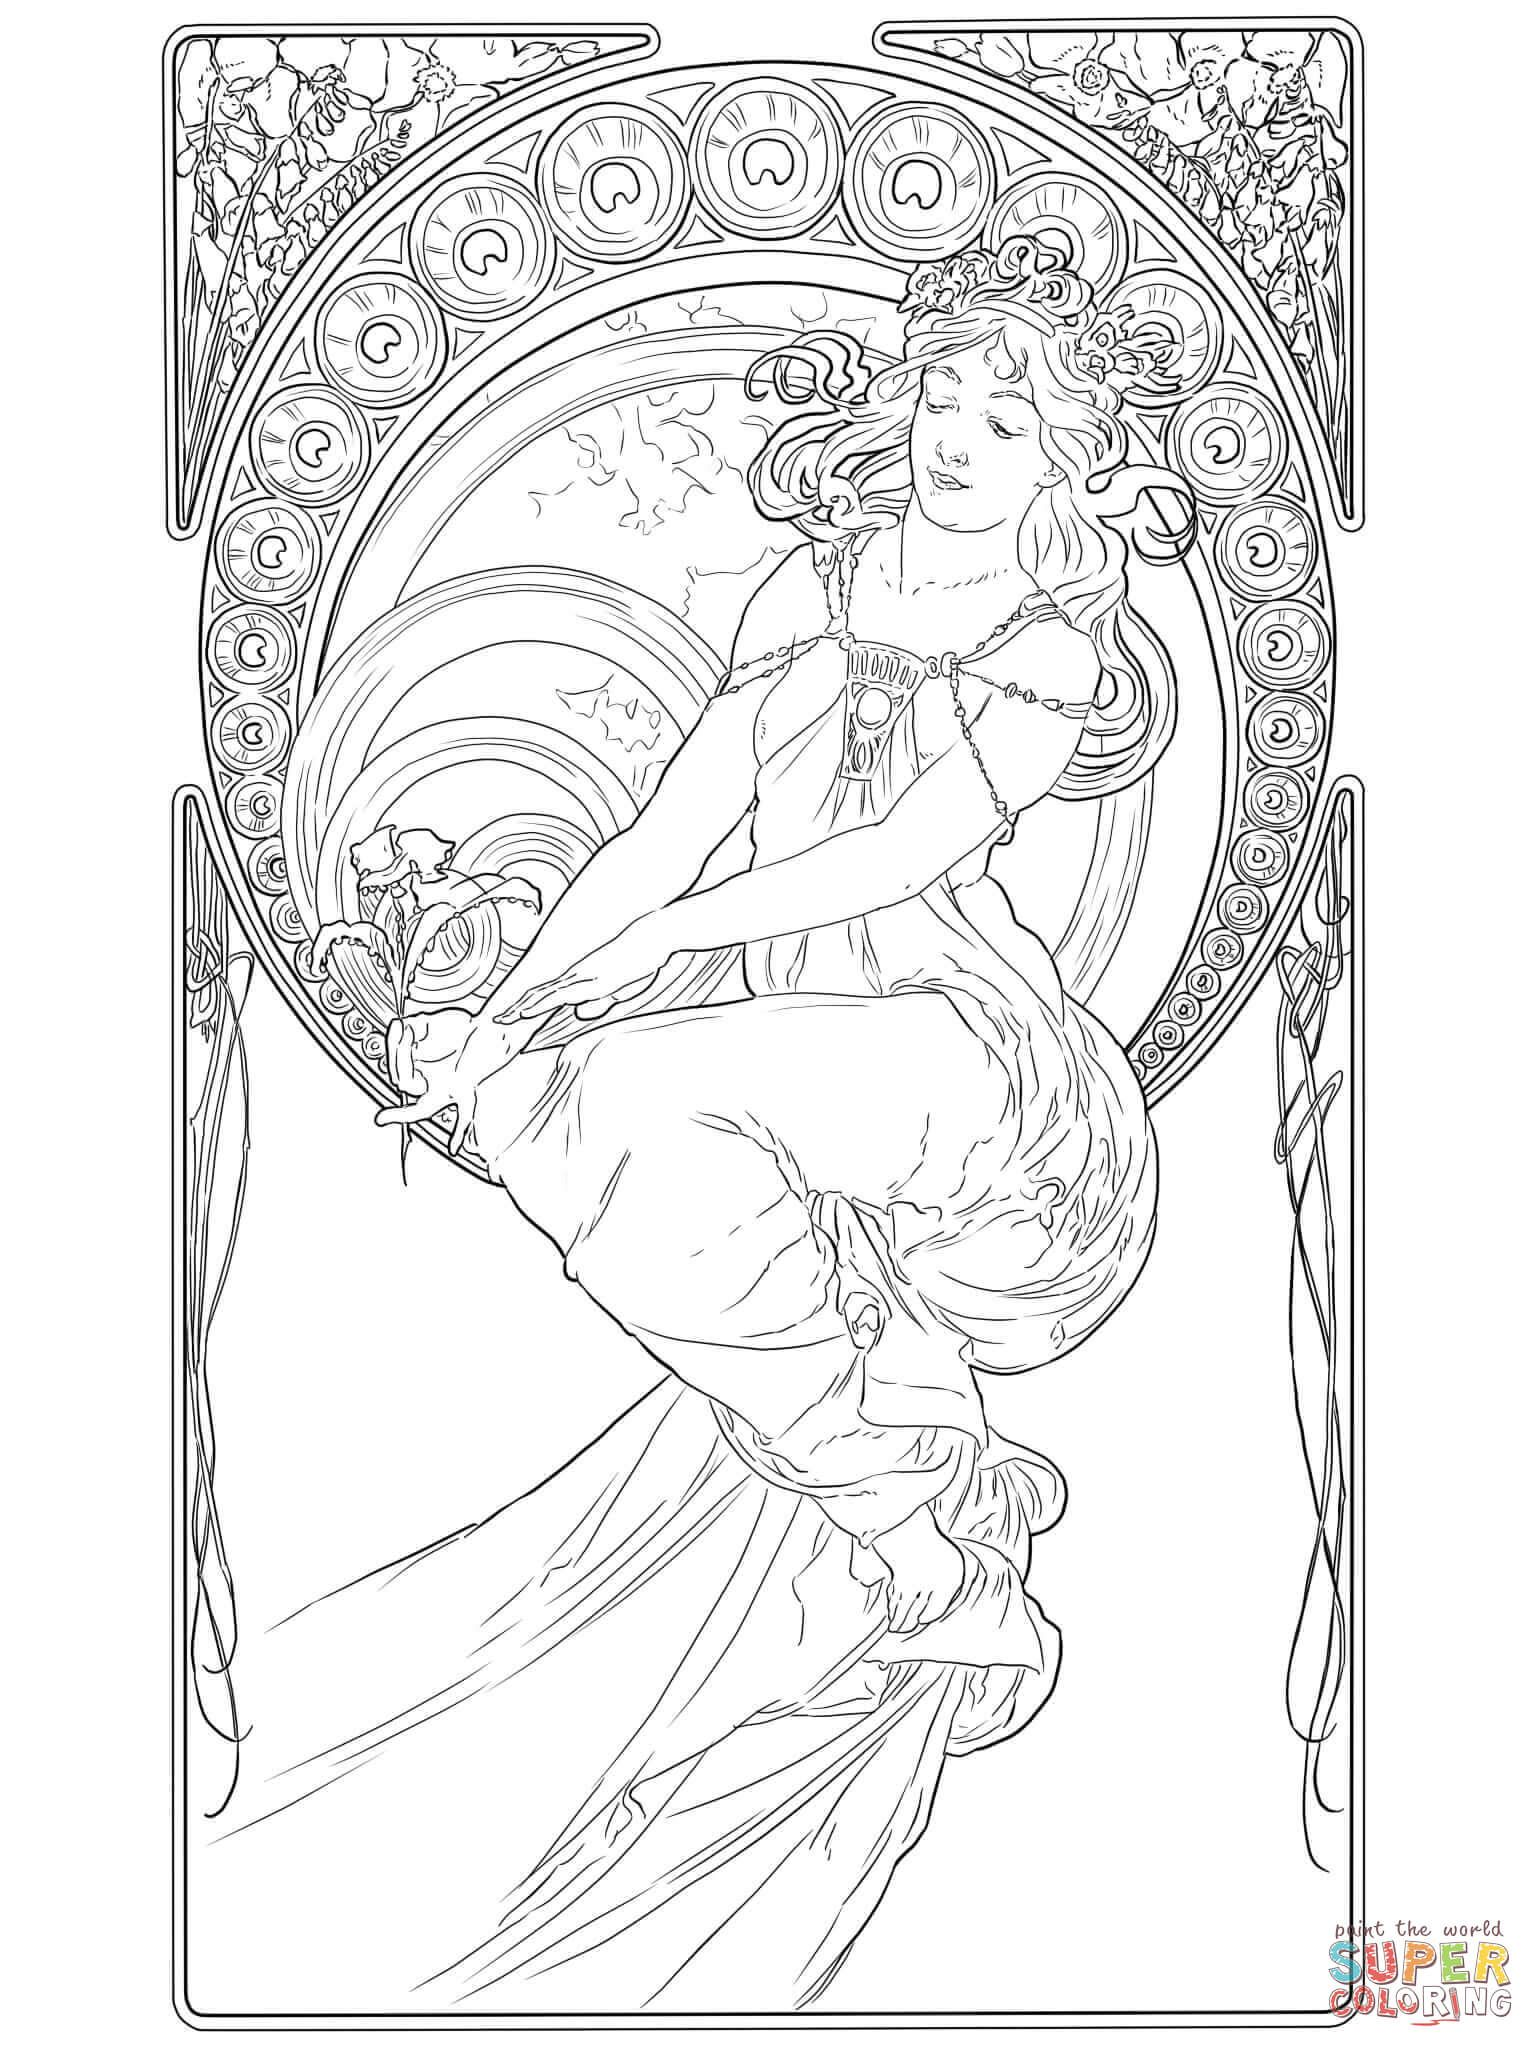 Painting By Alphonse Mucha Coloring Page From Art Nouveau Category